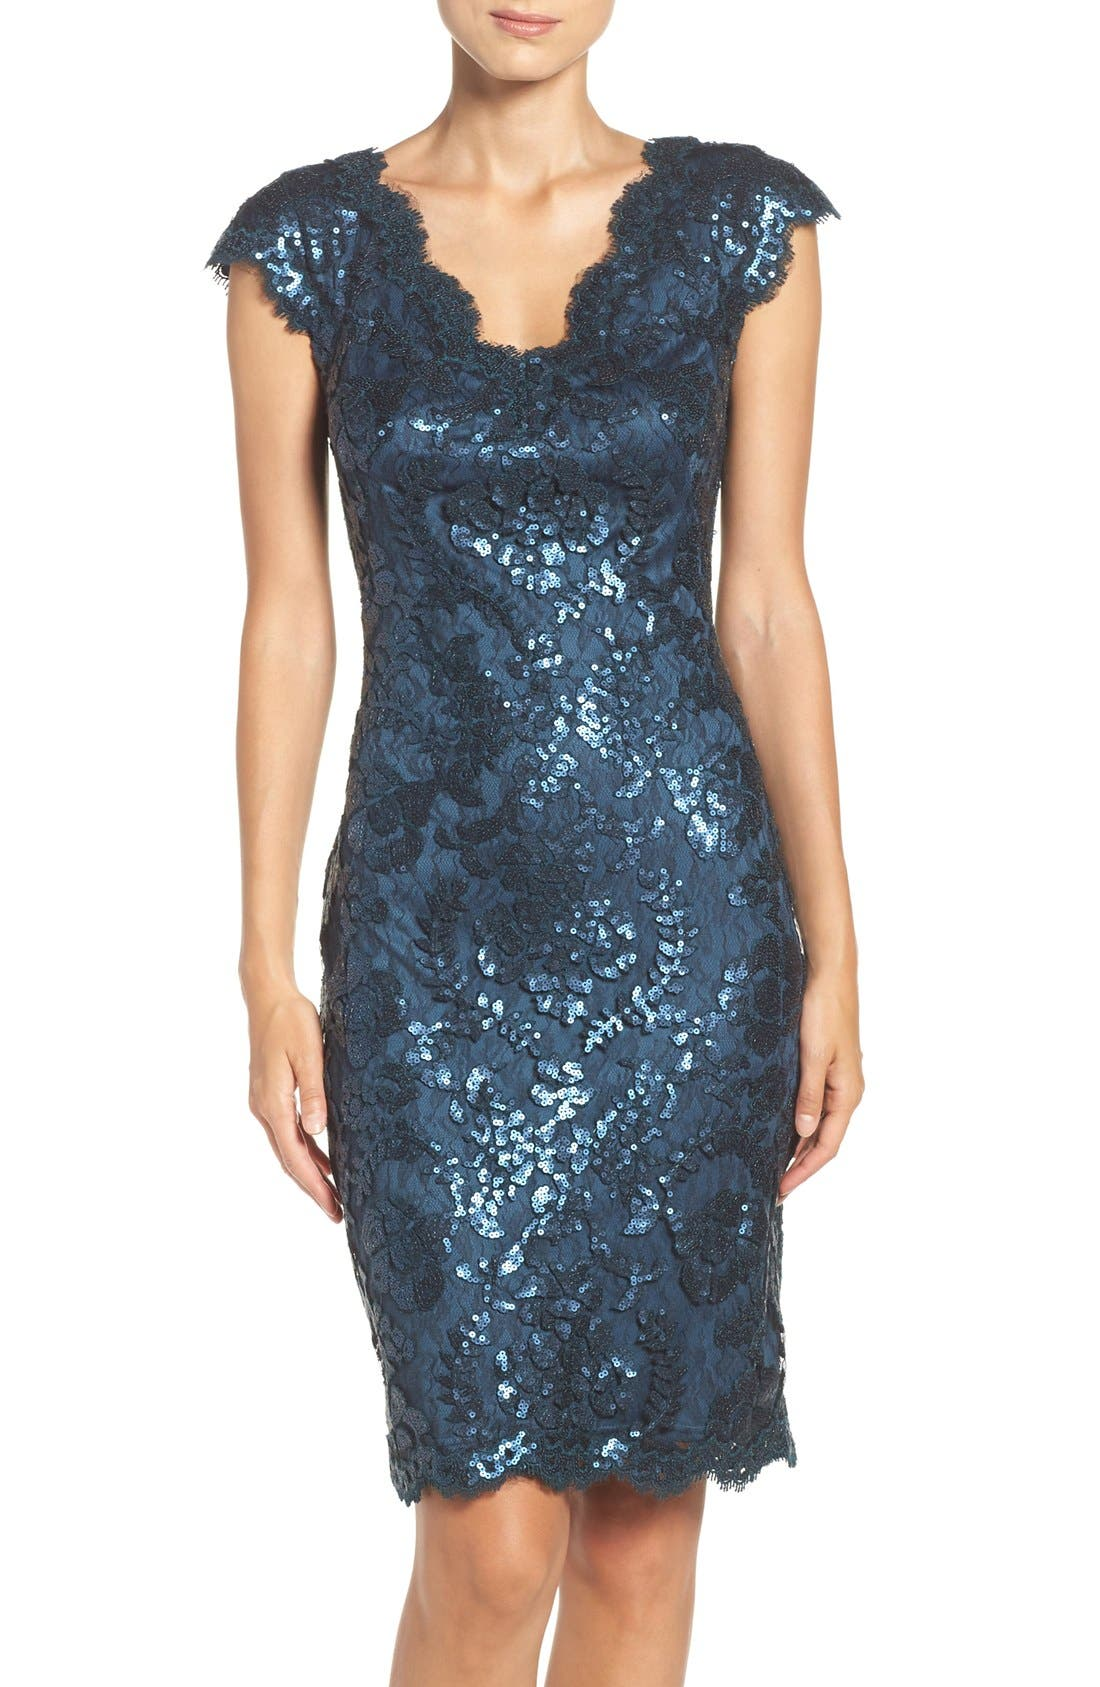 Alternate Image 1 Selected - Tadashi Shoji Sequin Sheath Dress (Regular & Petite)